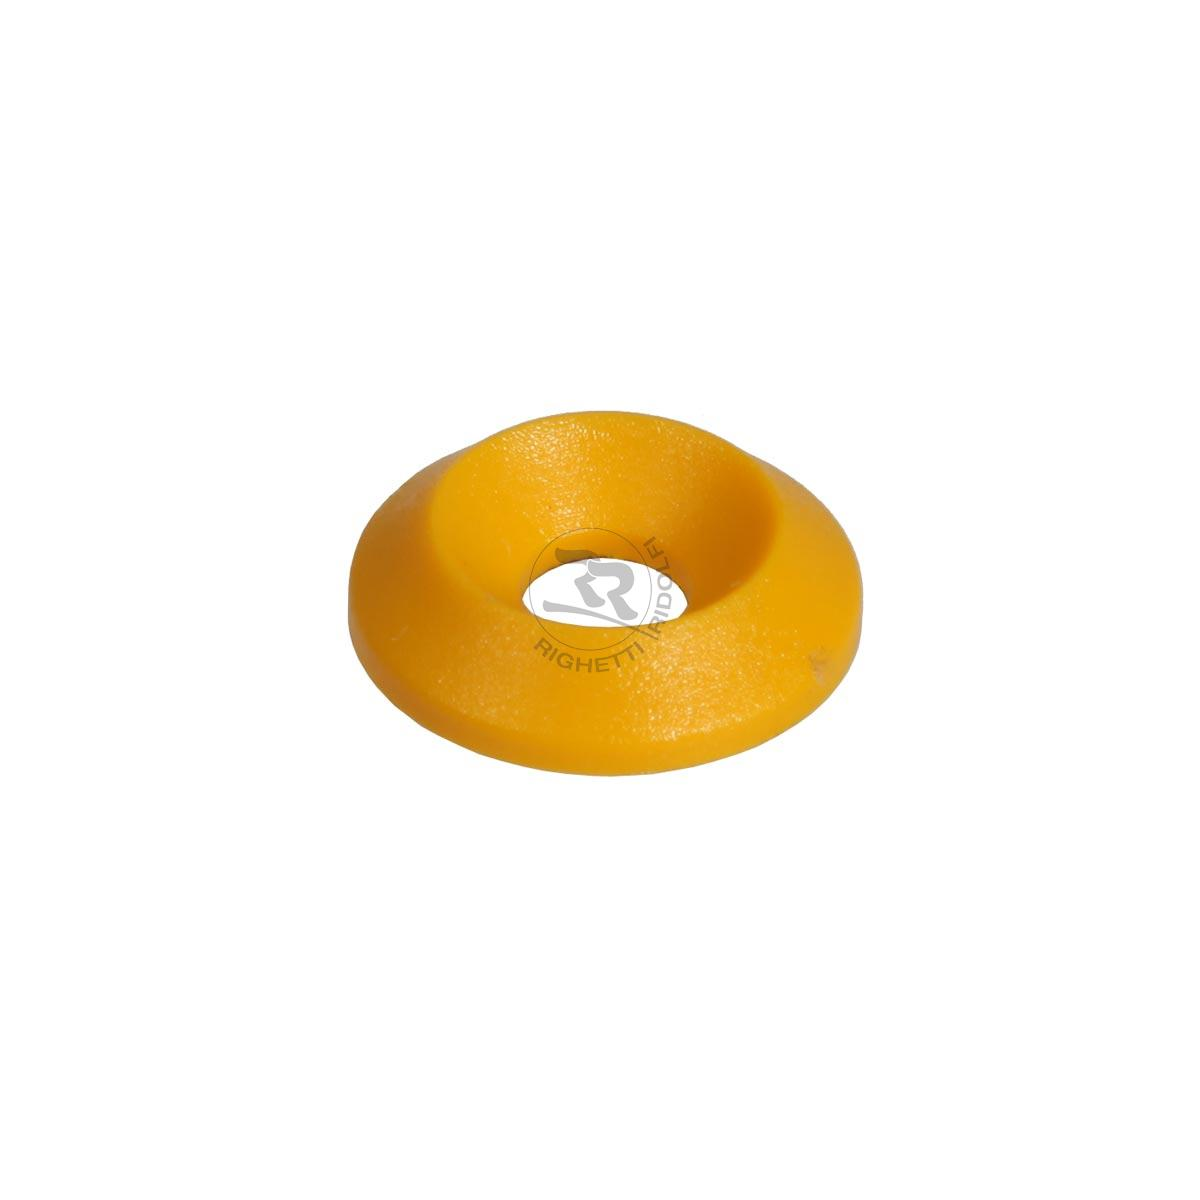 COUNTERSUNK WASHER 17 x 6mm YELLOW COLOUR